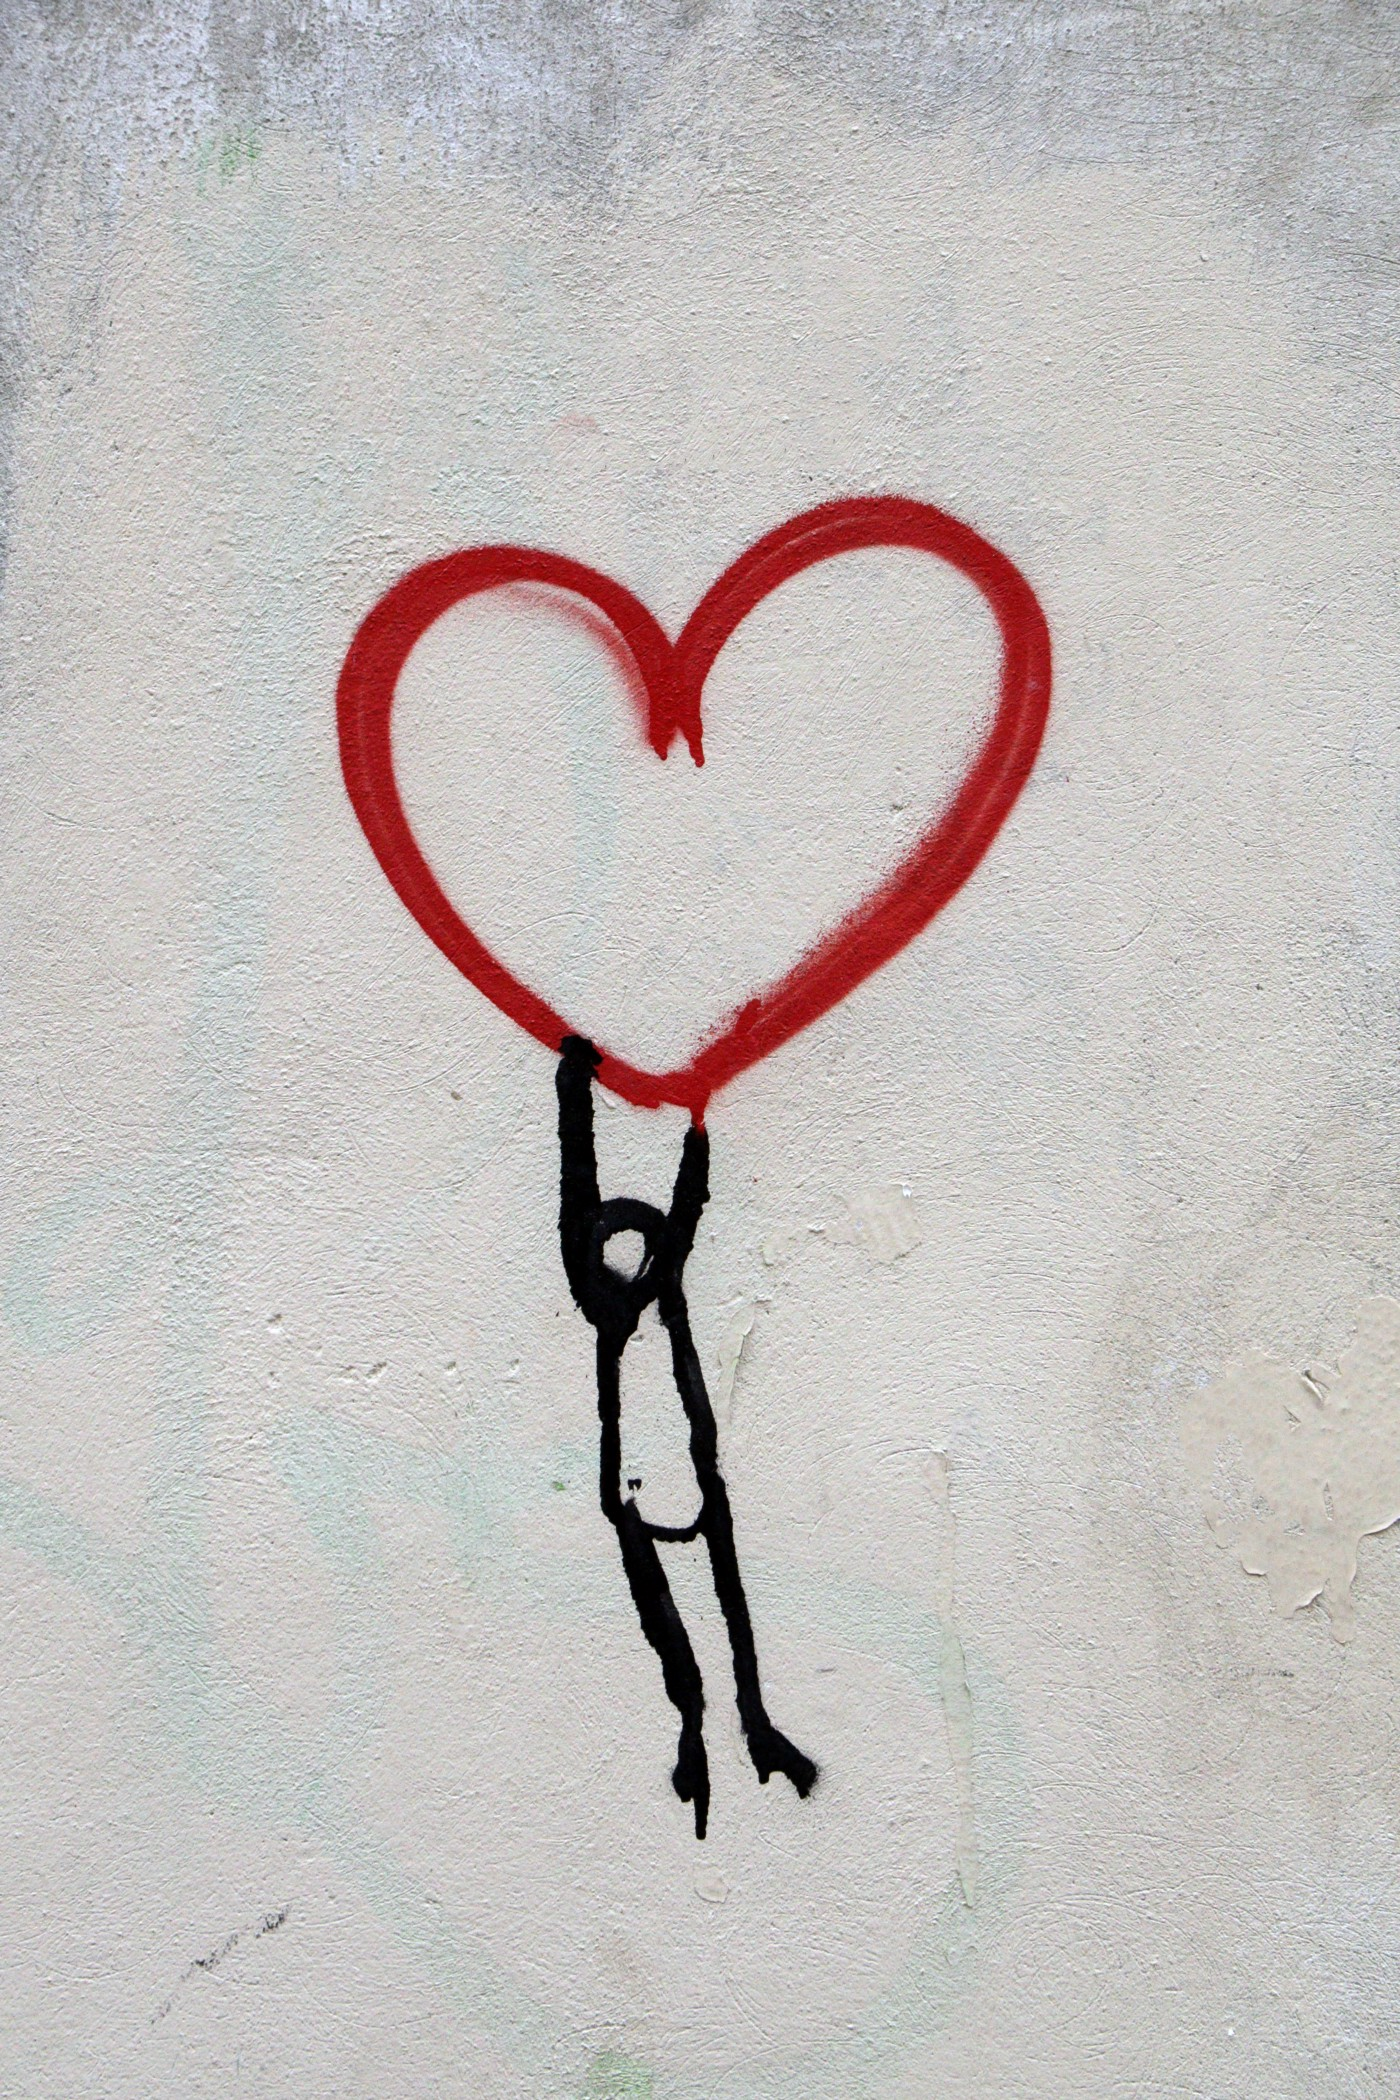 A figure drawn on a wall hangs beneath a heart, like a desperate man hanging from a balloon.